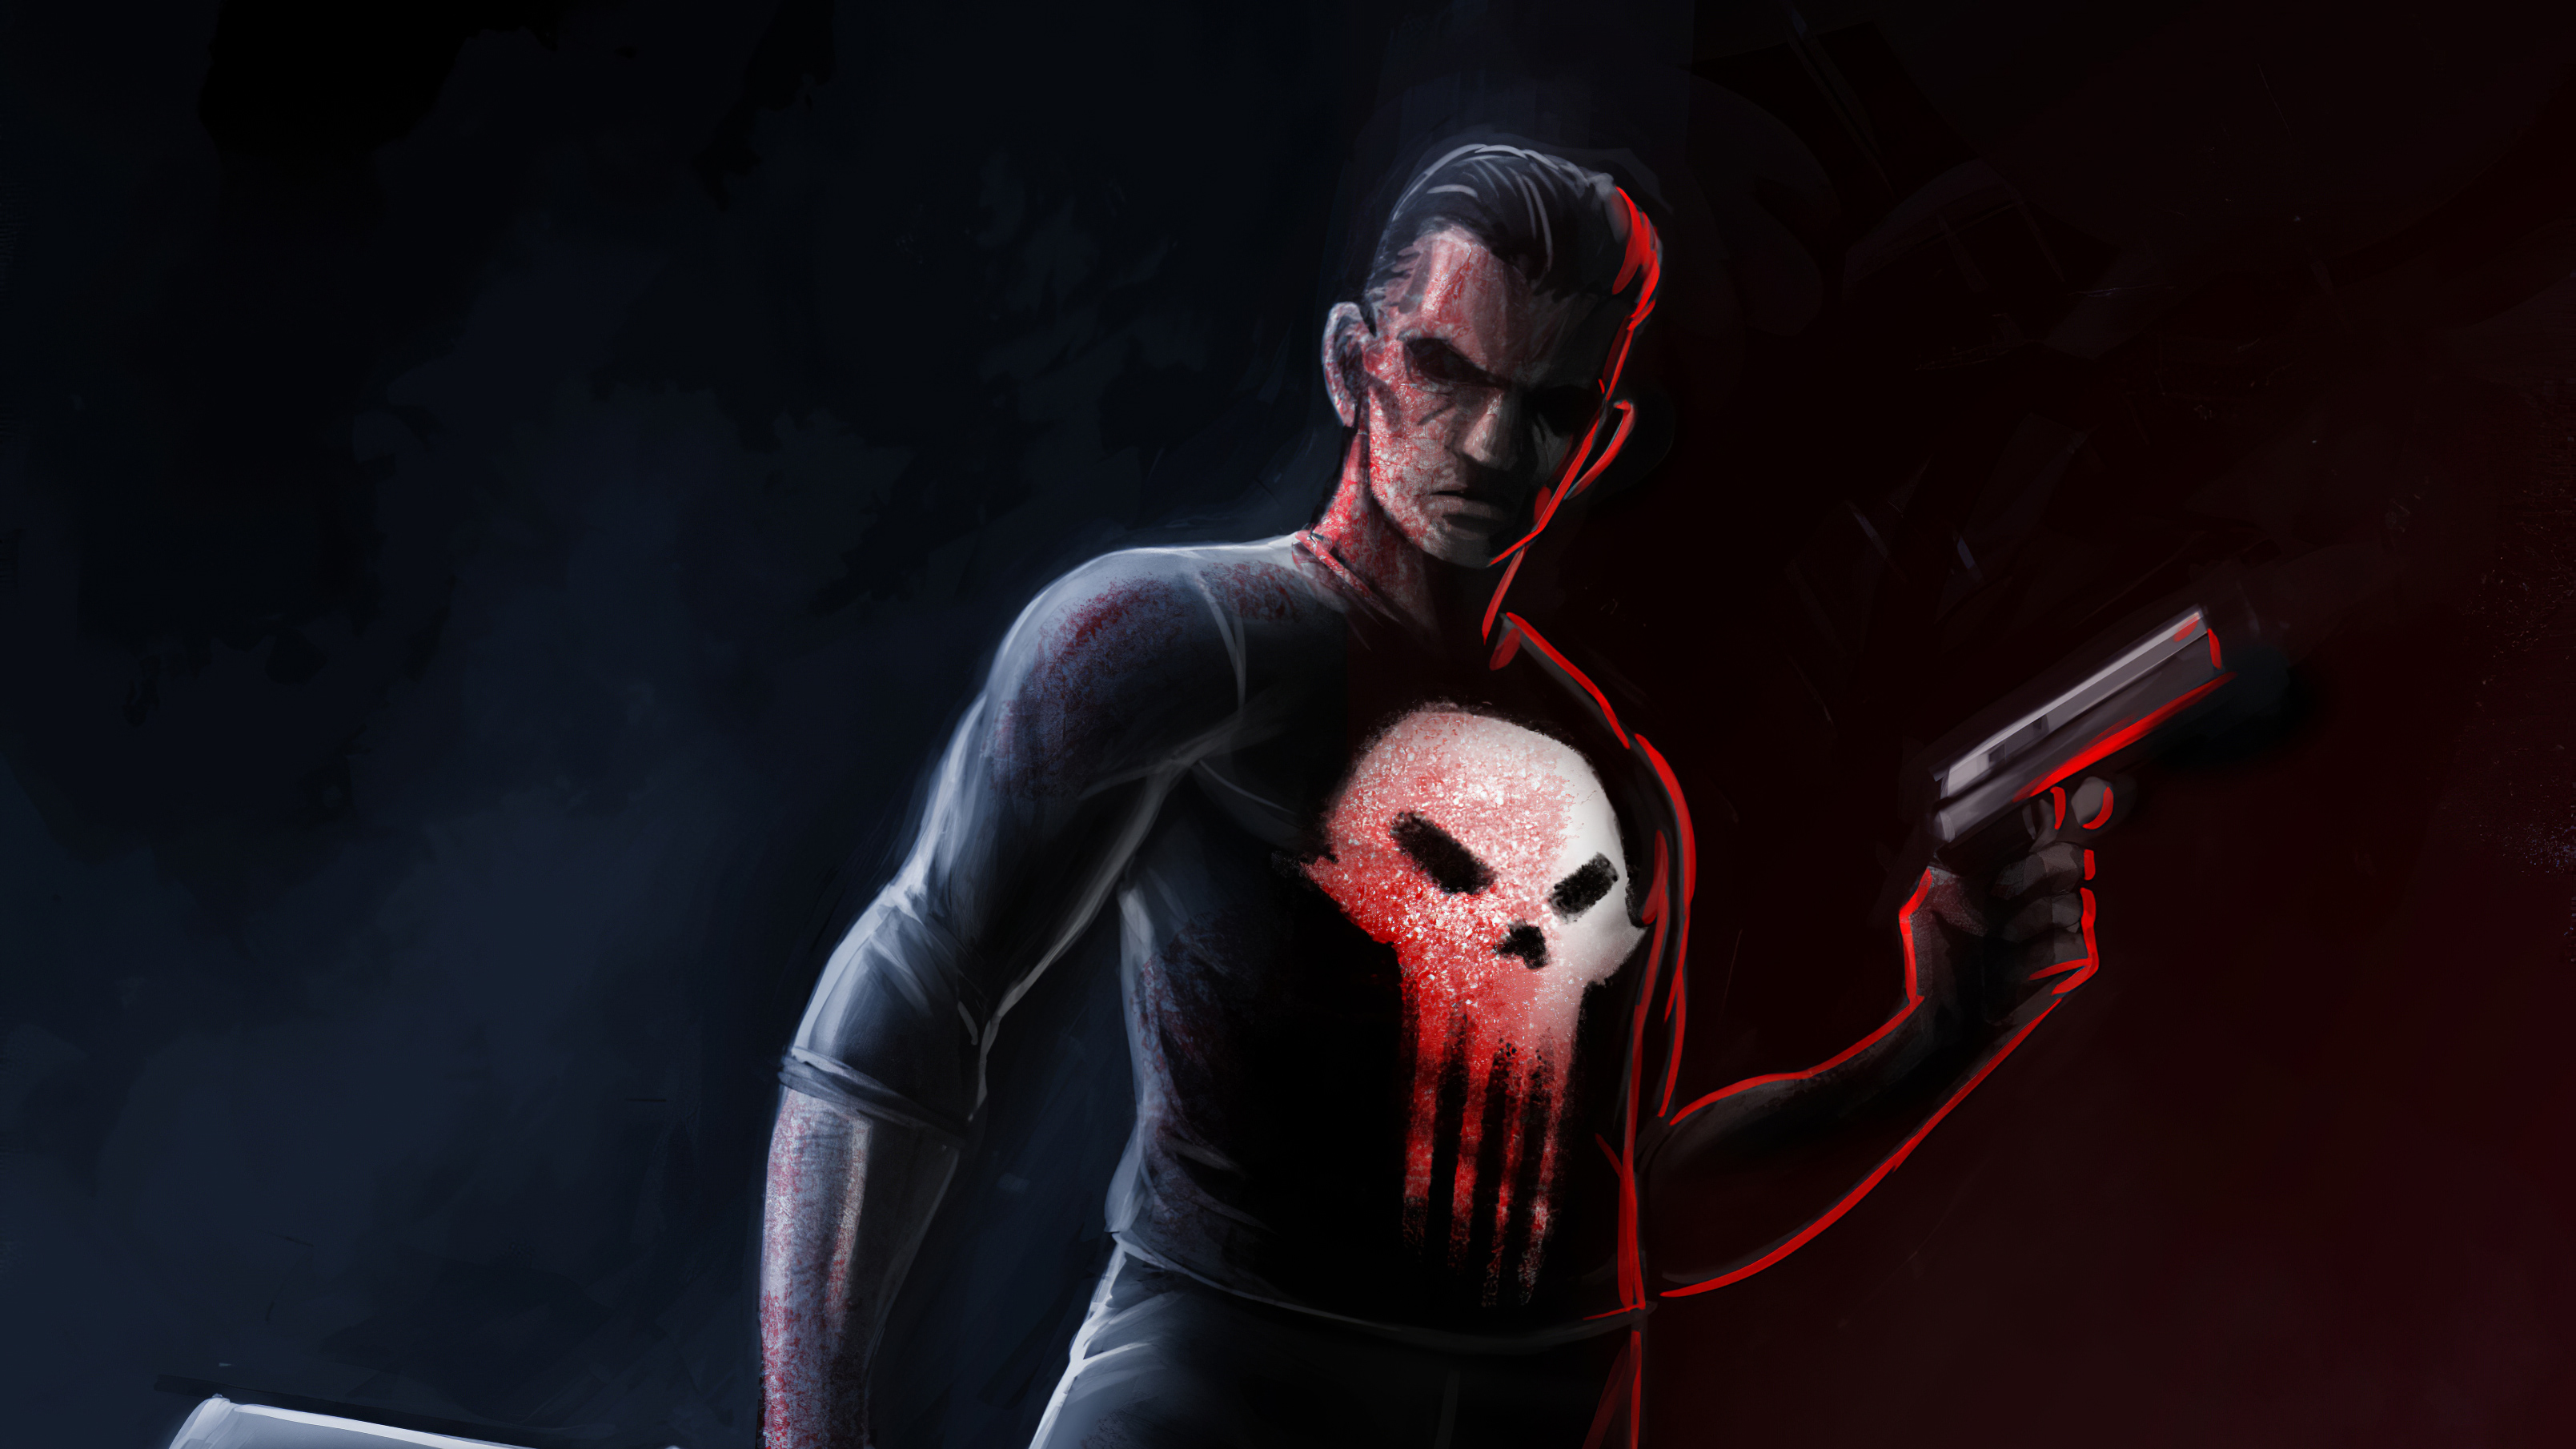 Fondos de pantalla Punisher Artwork